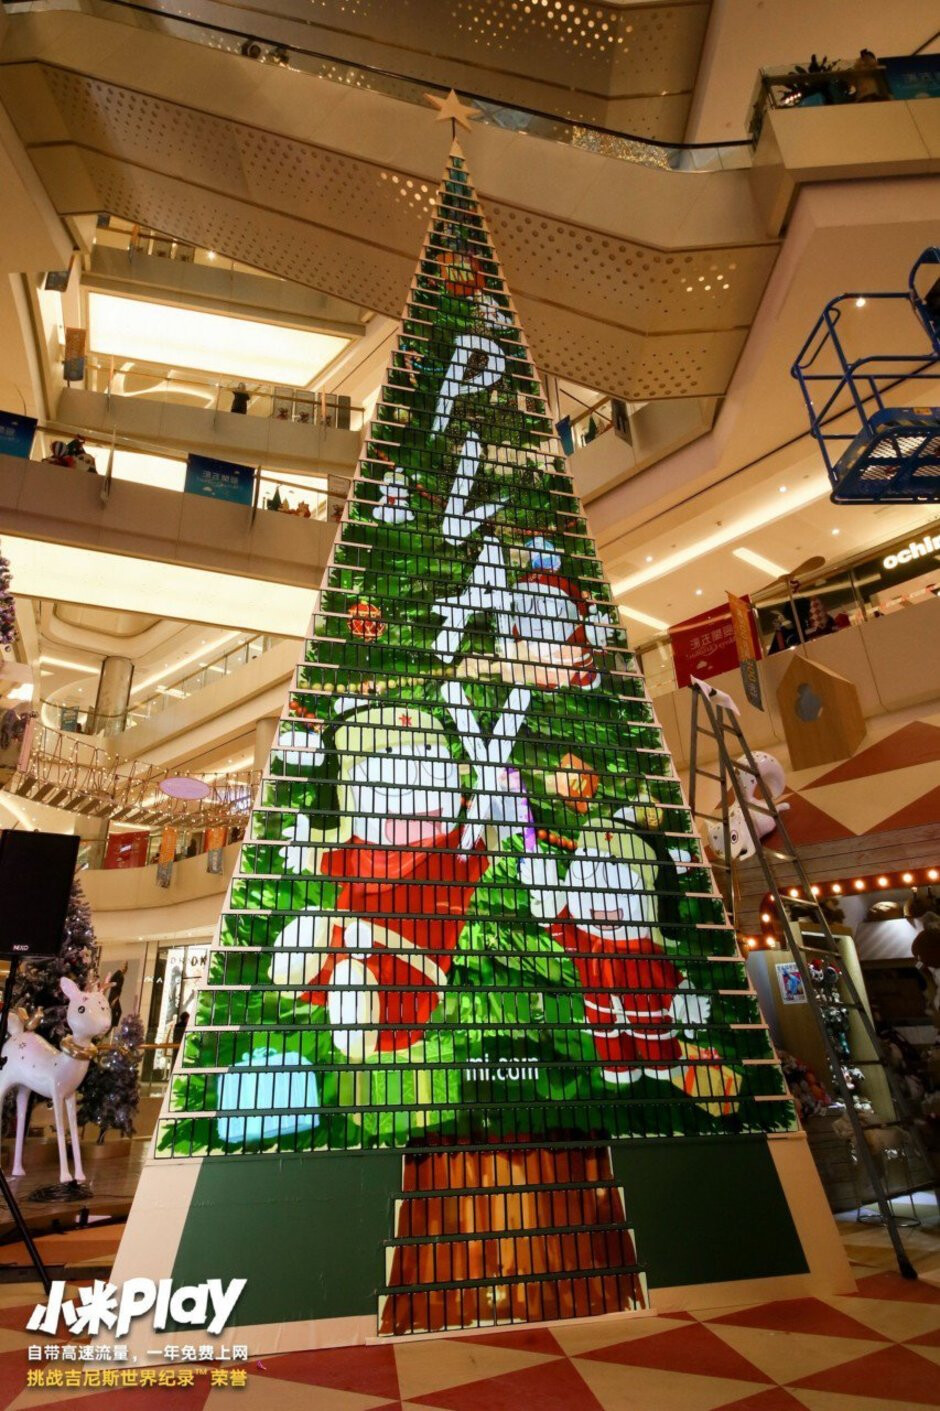 Made up of 1,005 Xiaomi Mi Play handsets, this display in a Beijing mall helped Xiaomi earn its third mention in the Book of World Records - Xiaomi makes the Guinness Book of World Records for the largest dynamic smartphone display